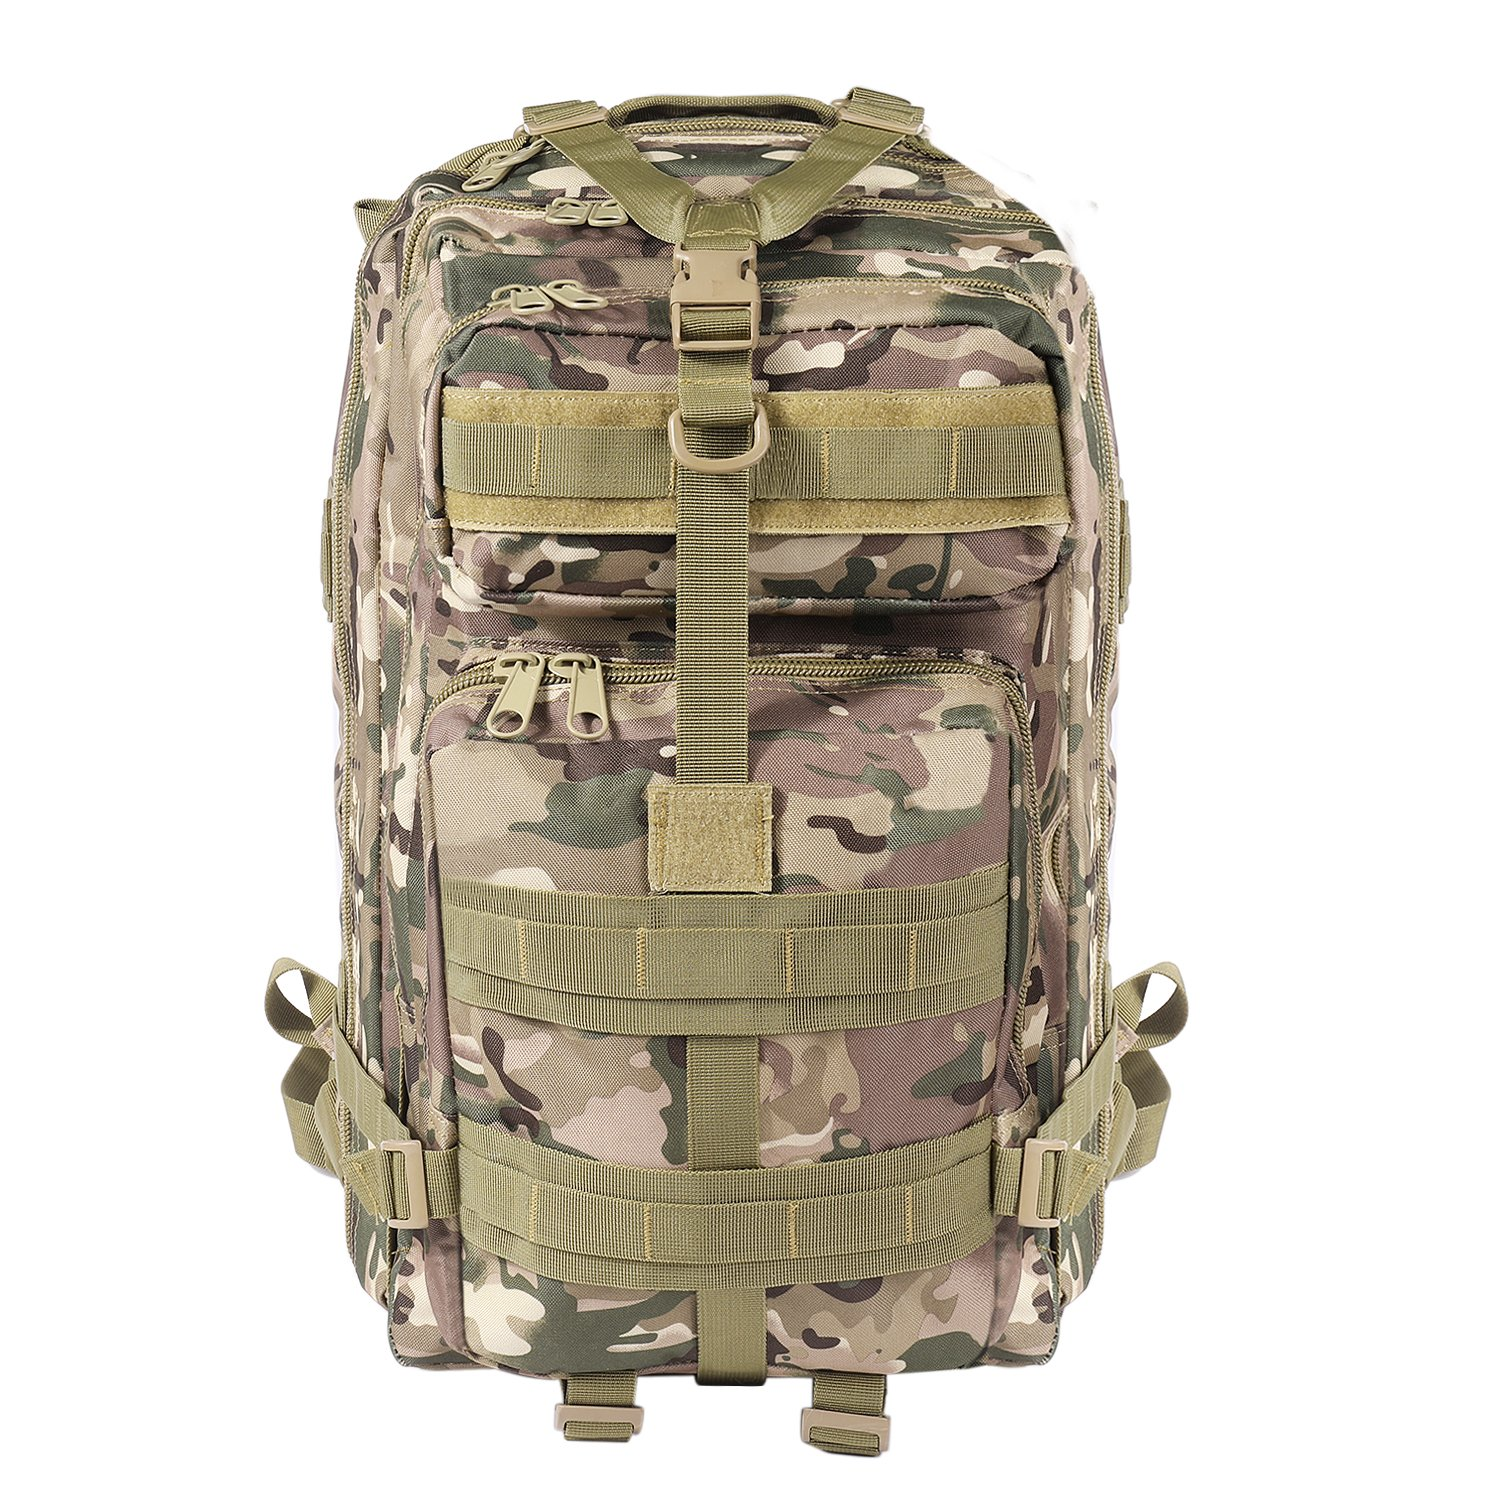 Flexzion Tactical Backpack Marshland Camo Large Army Assault Pack 40L w MOLLE Gear Attachment System, Bug-Out Bag Daypack Rucksack for Outdoor Hiking Trekking Camping Hunting